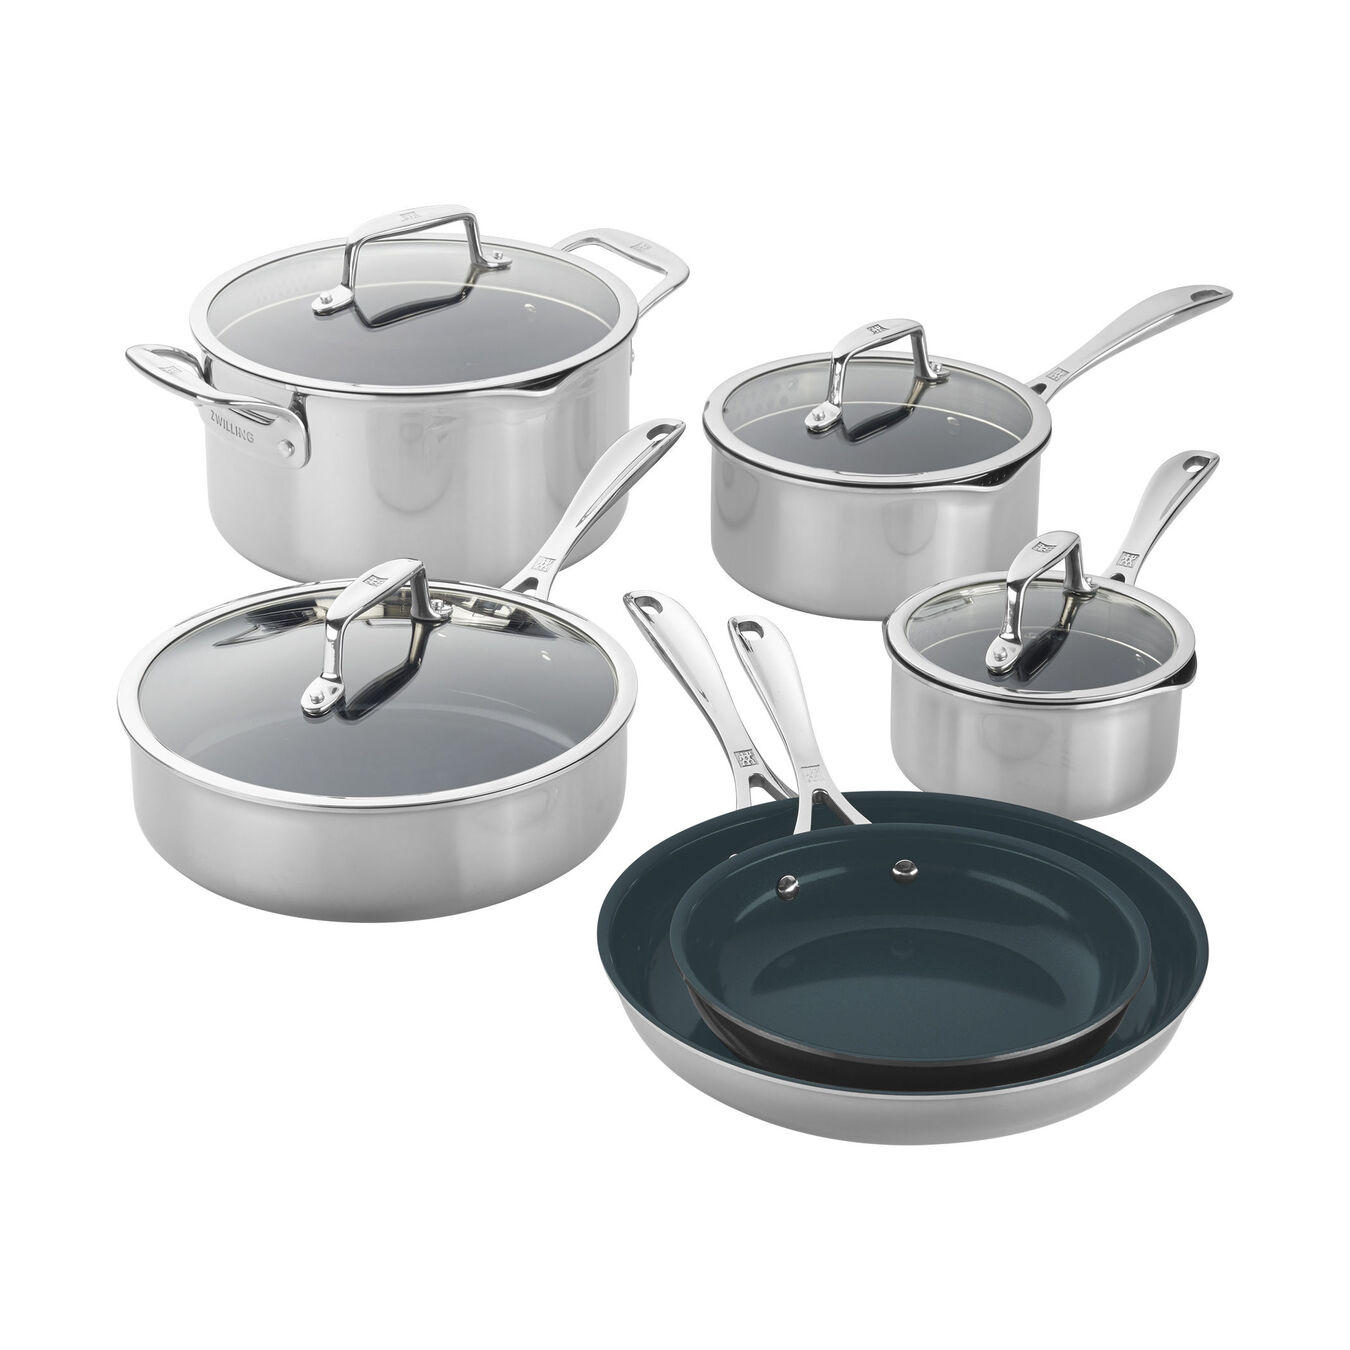 10-pc, 18/10 Stainless Steel, 18/10 Stainless Steel, Non-stick, Pots and pans set,,large 1